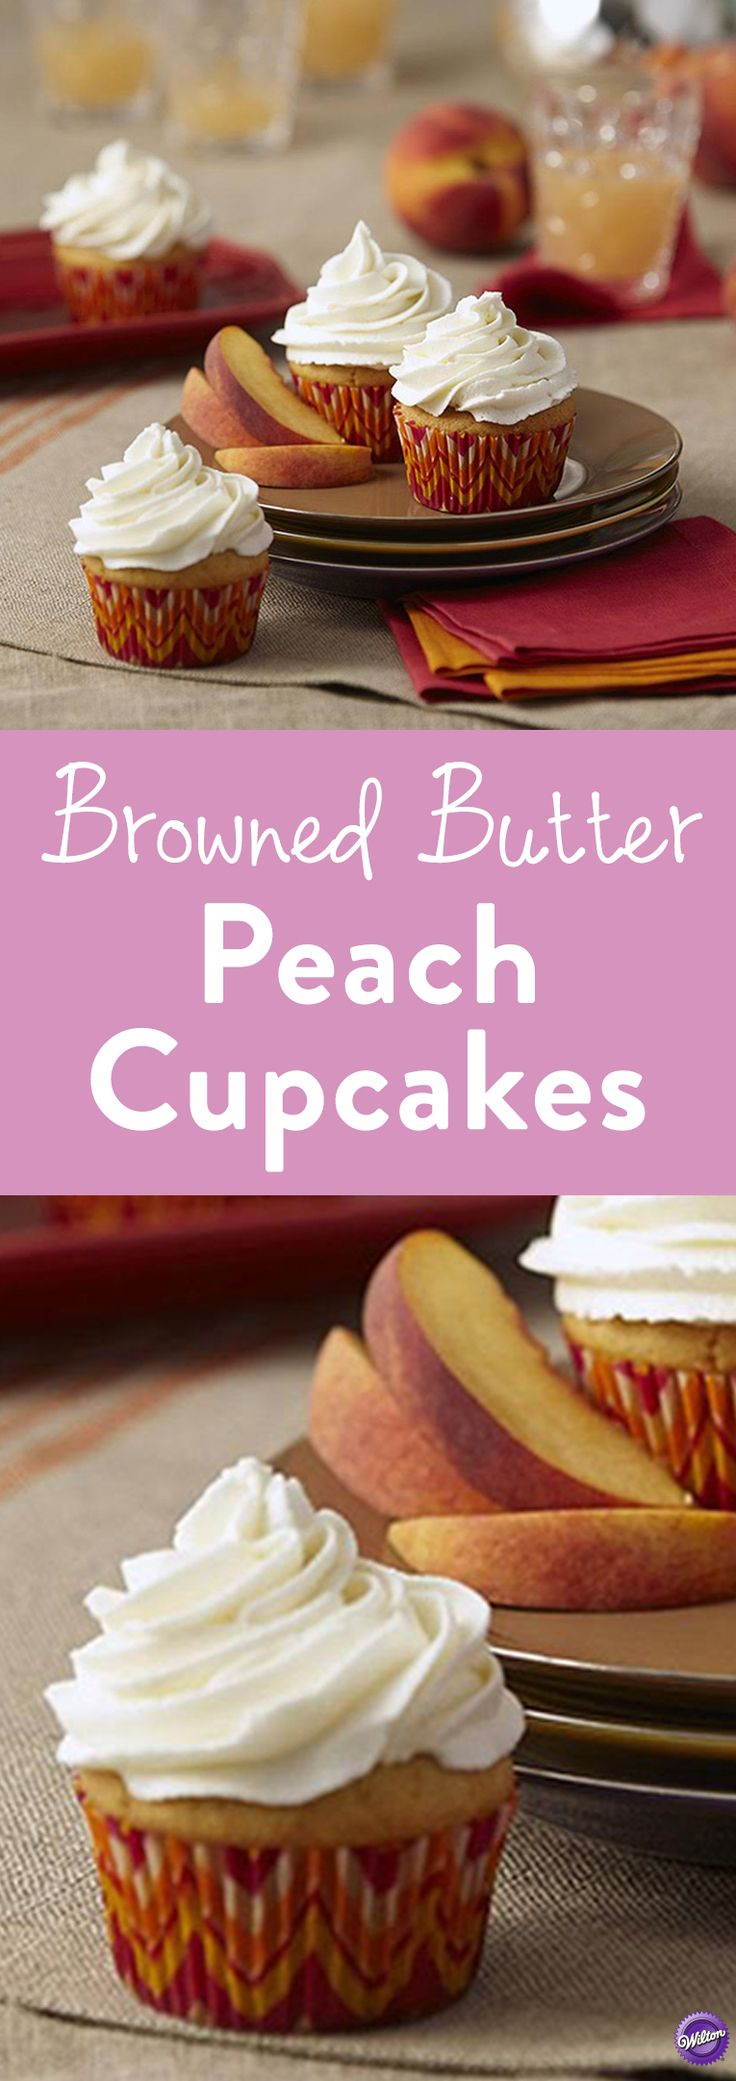 Browned Butter Peach Cupcakes Recipe - Bake the perfect summertime snack with these Browned Butter Peach Cupcakes. Replacing plain butter with browned butter adds a nutty, toasted flavor that softens the bright, floral notes of Juicy Peach Flavor Concentrate ever-so-slightly, making this one sophisticated cupcake.